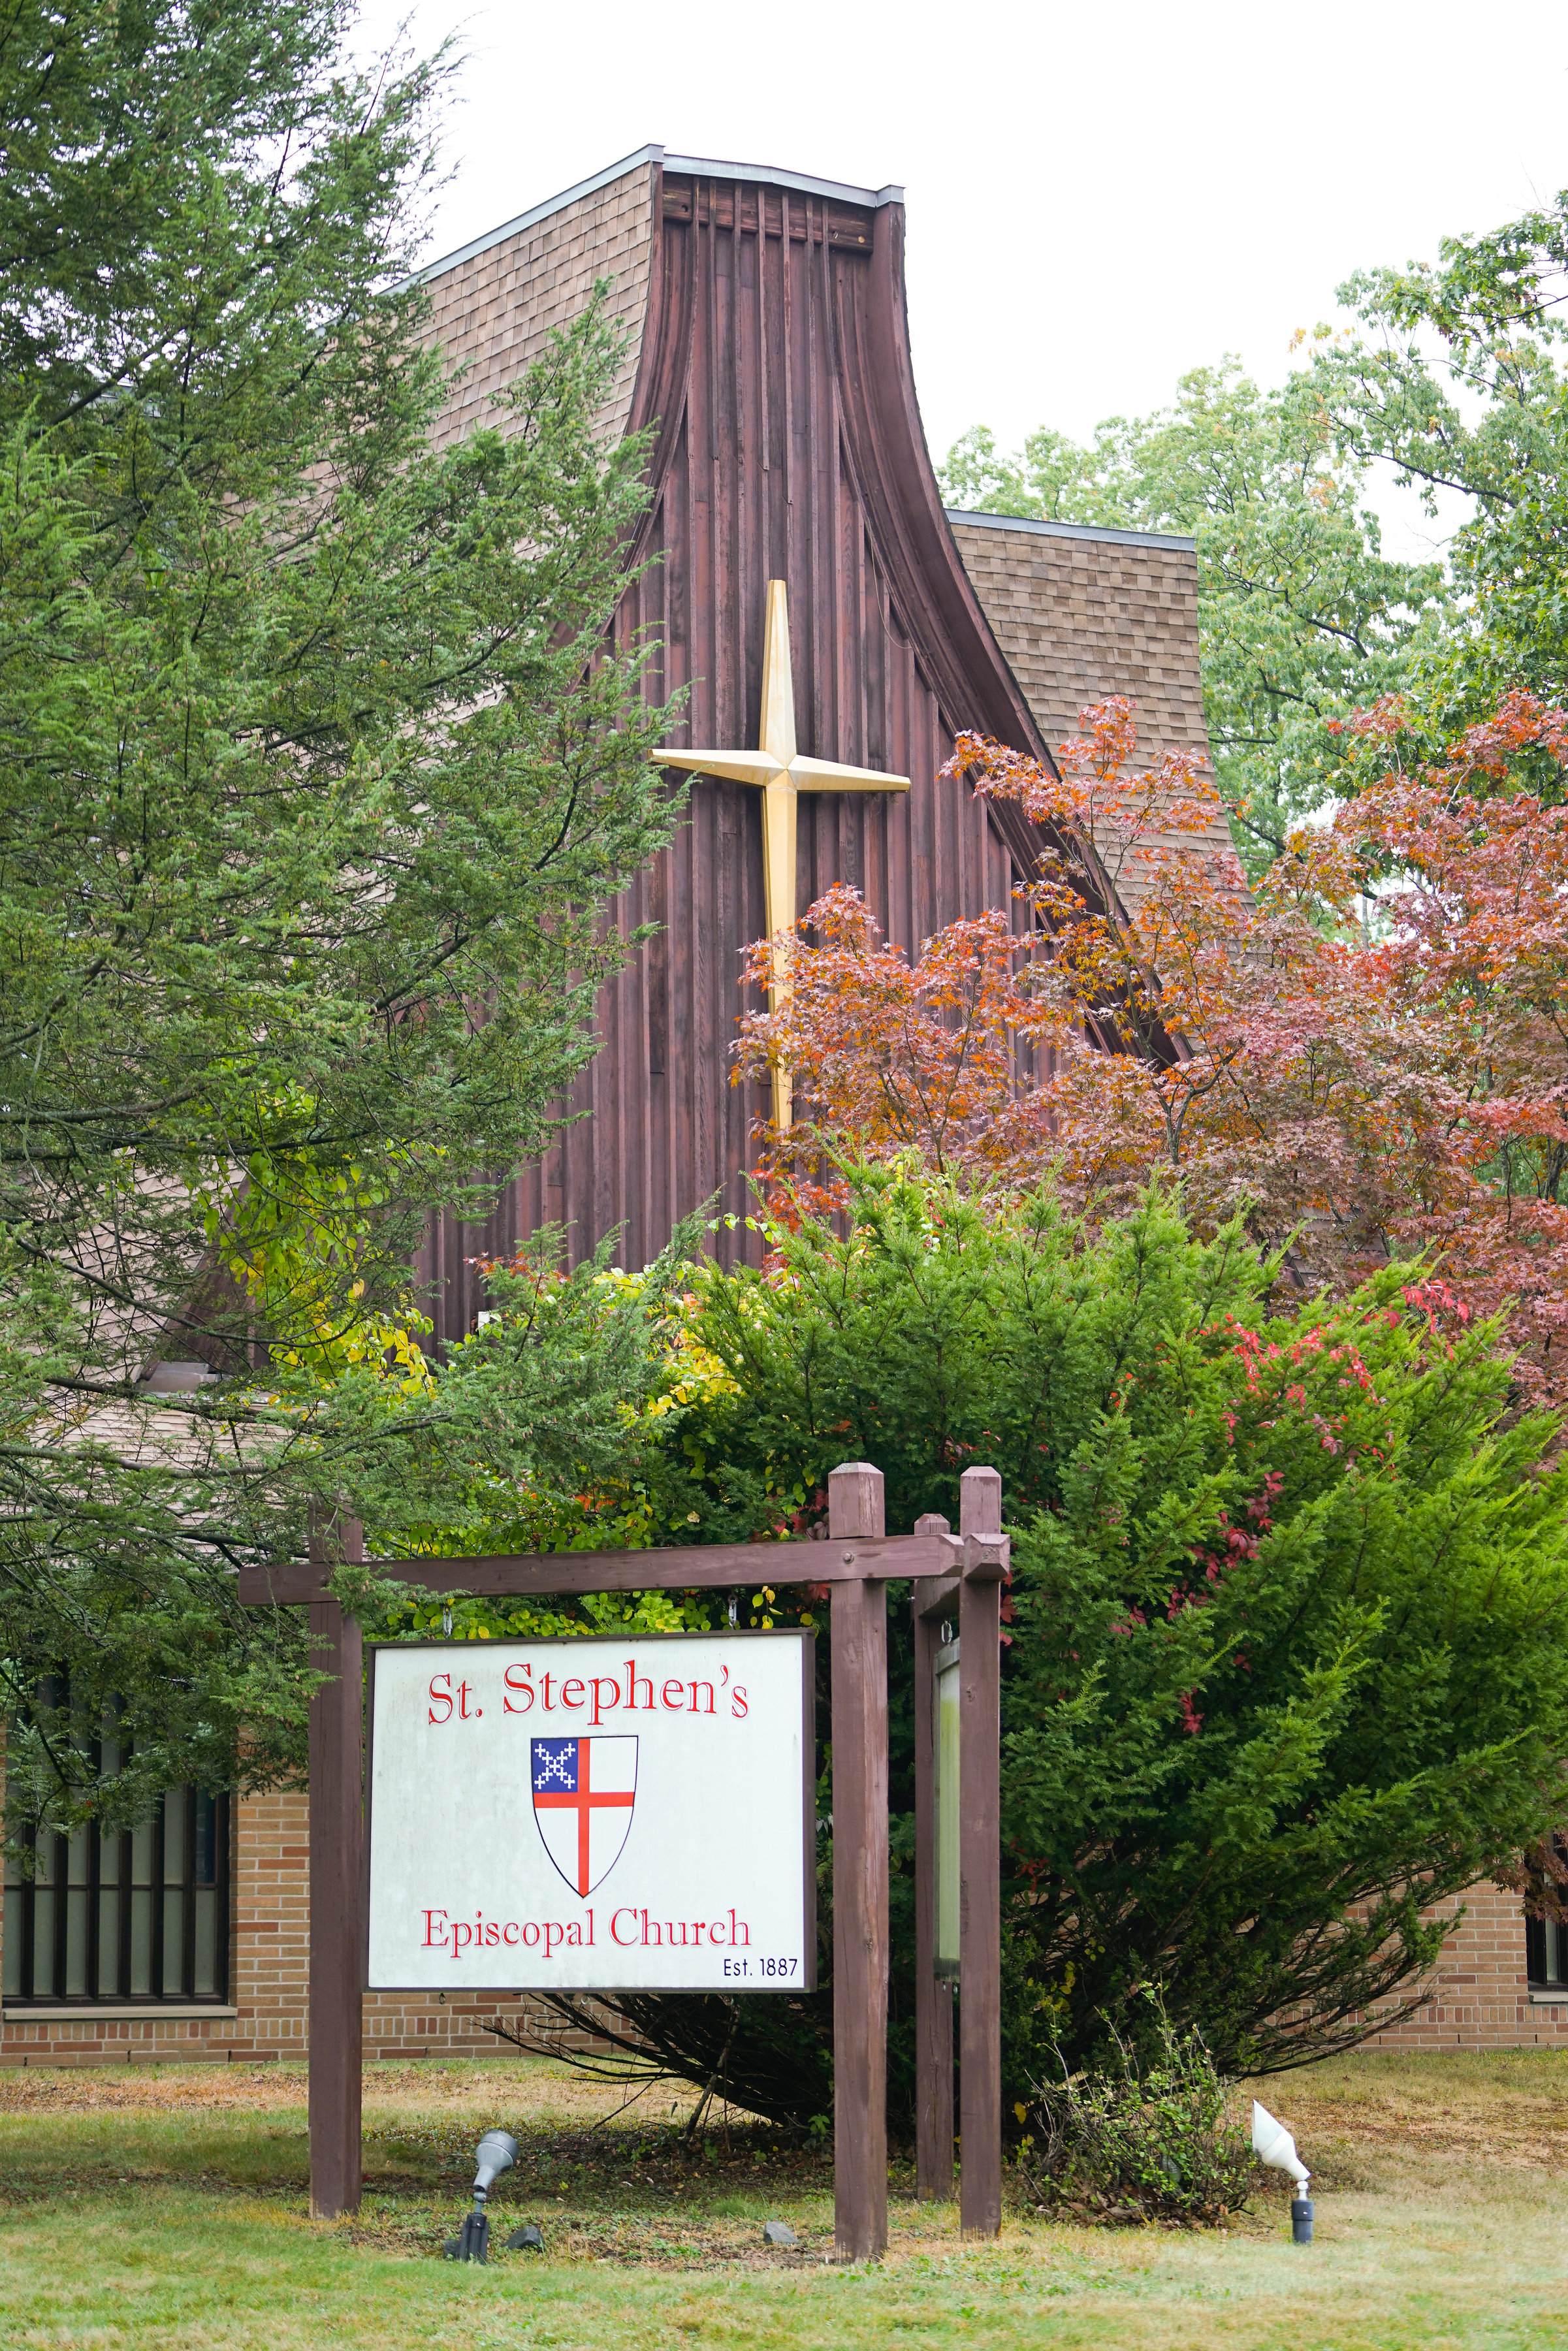 About St. Stephen